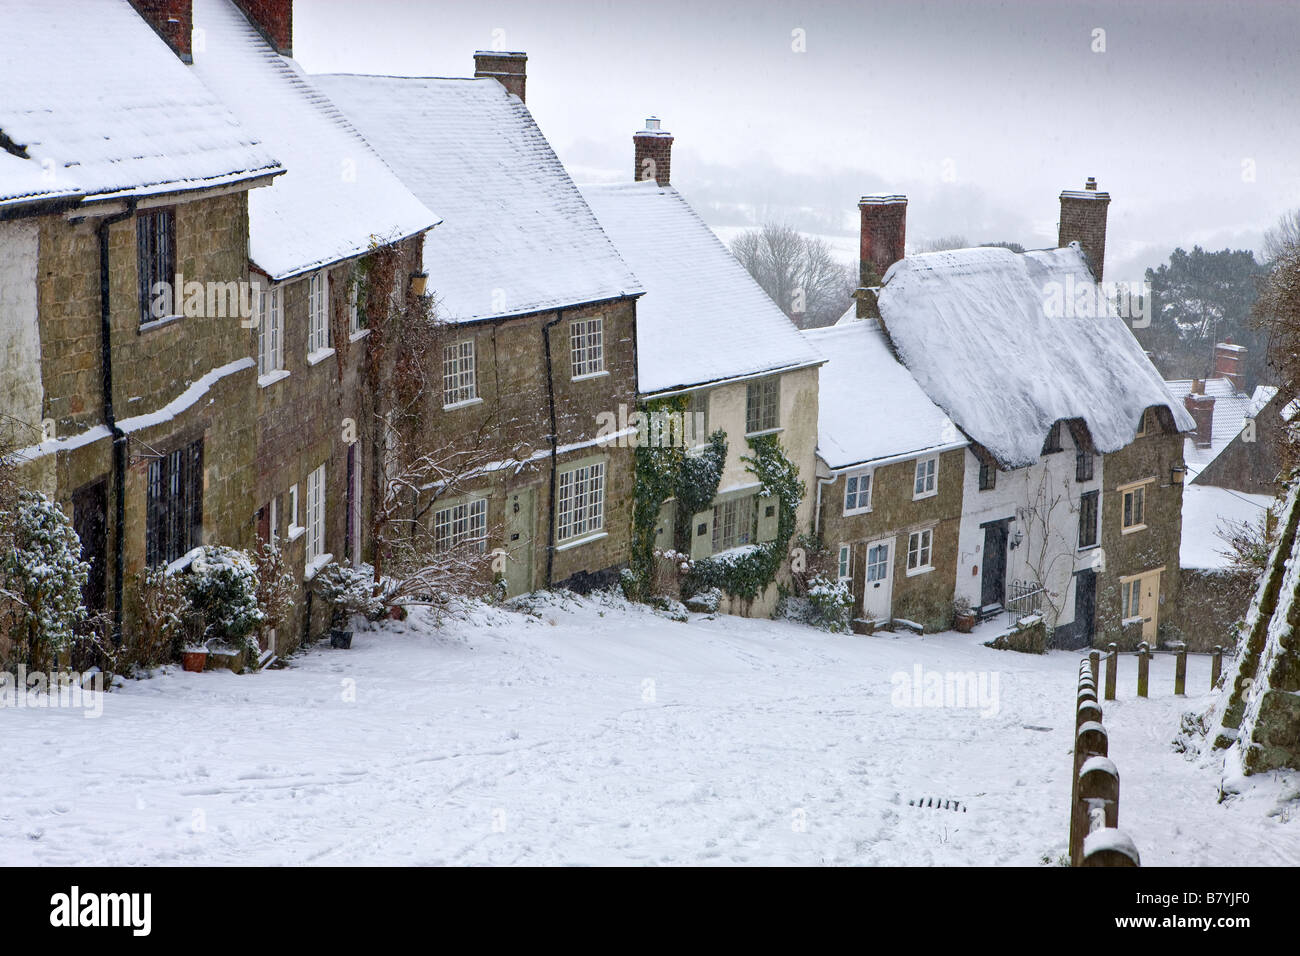 Winter Snow on Gold Hill at Shaftesbury in Dorset - Stock Image